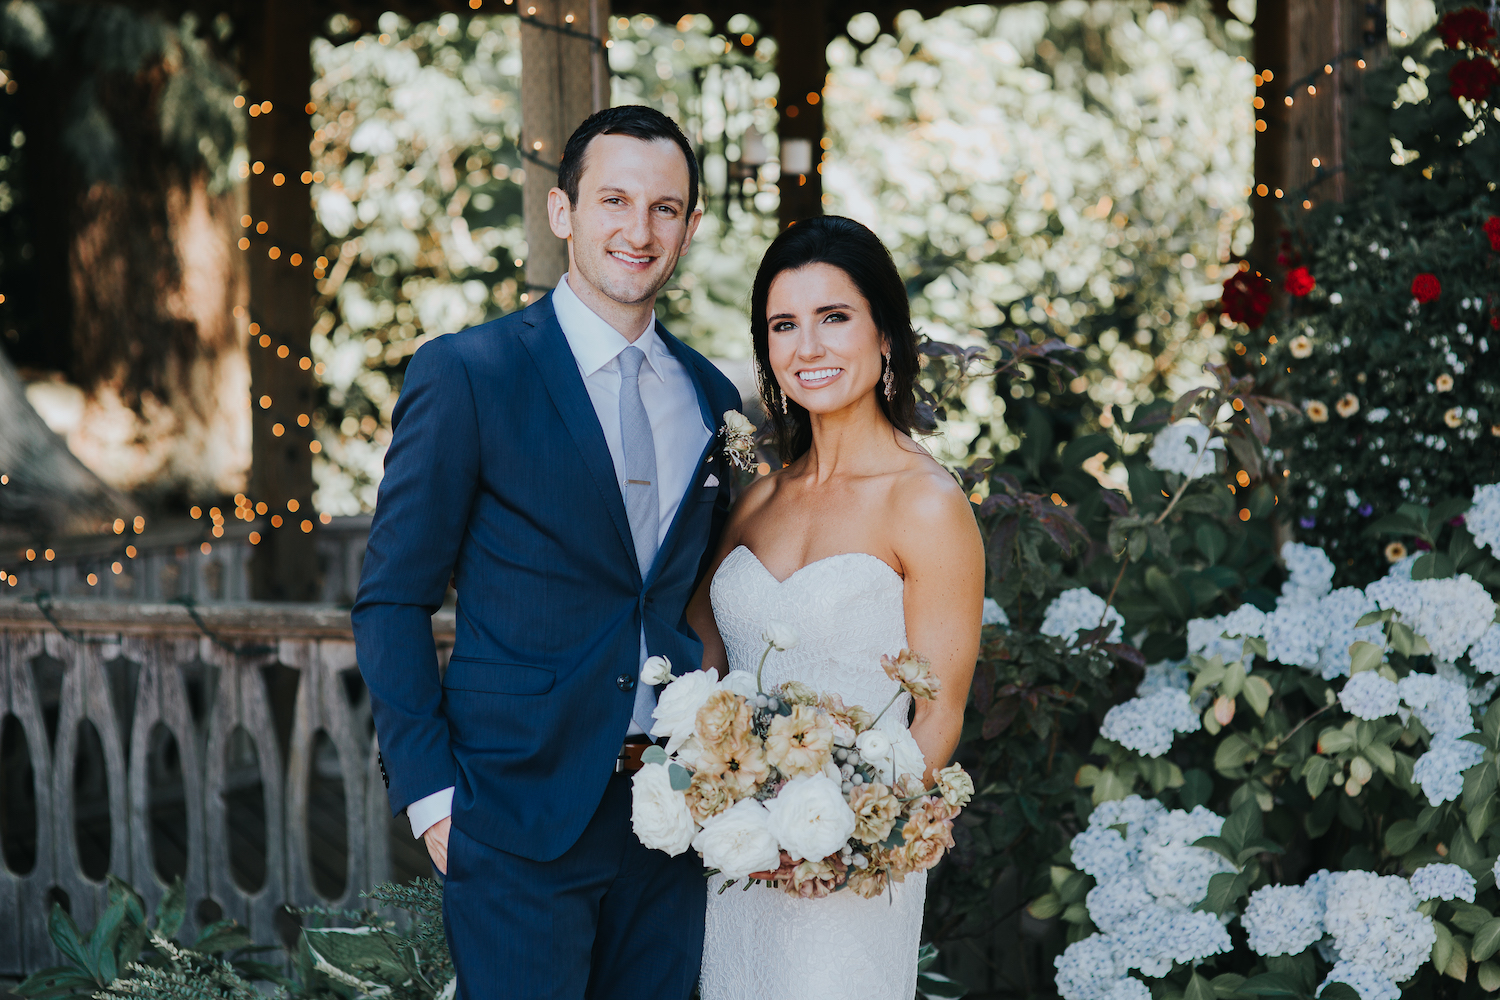 Wild Bloom Floral - Rachel Birkhofer Photography - Jessica and Phil - Real Wedding - Seattle 16.jpeg